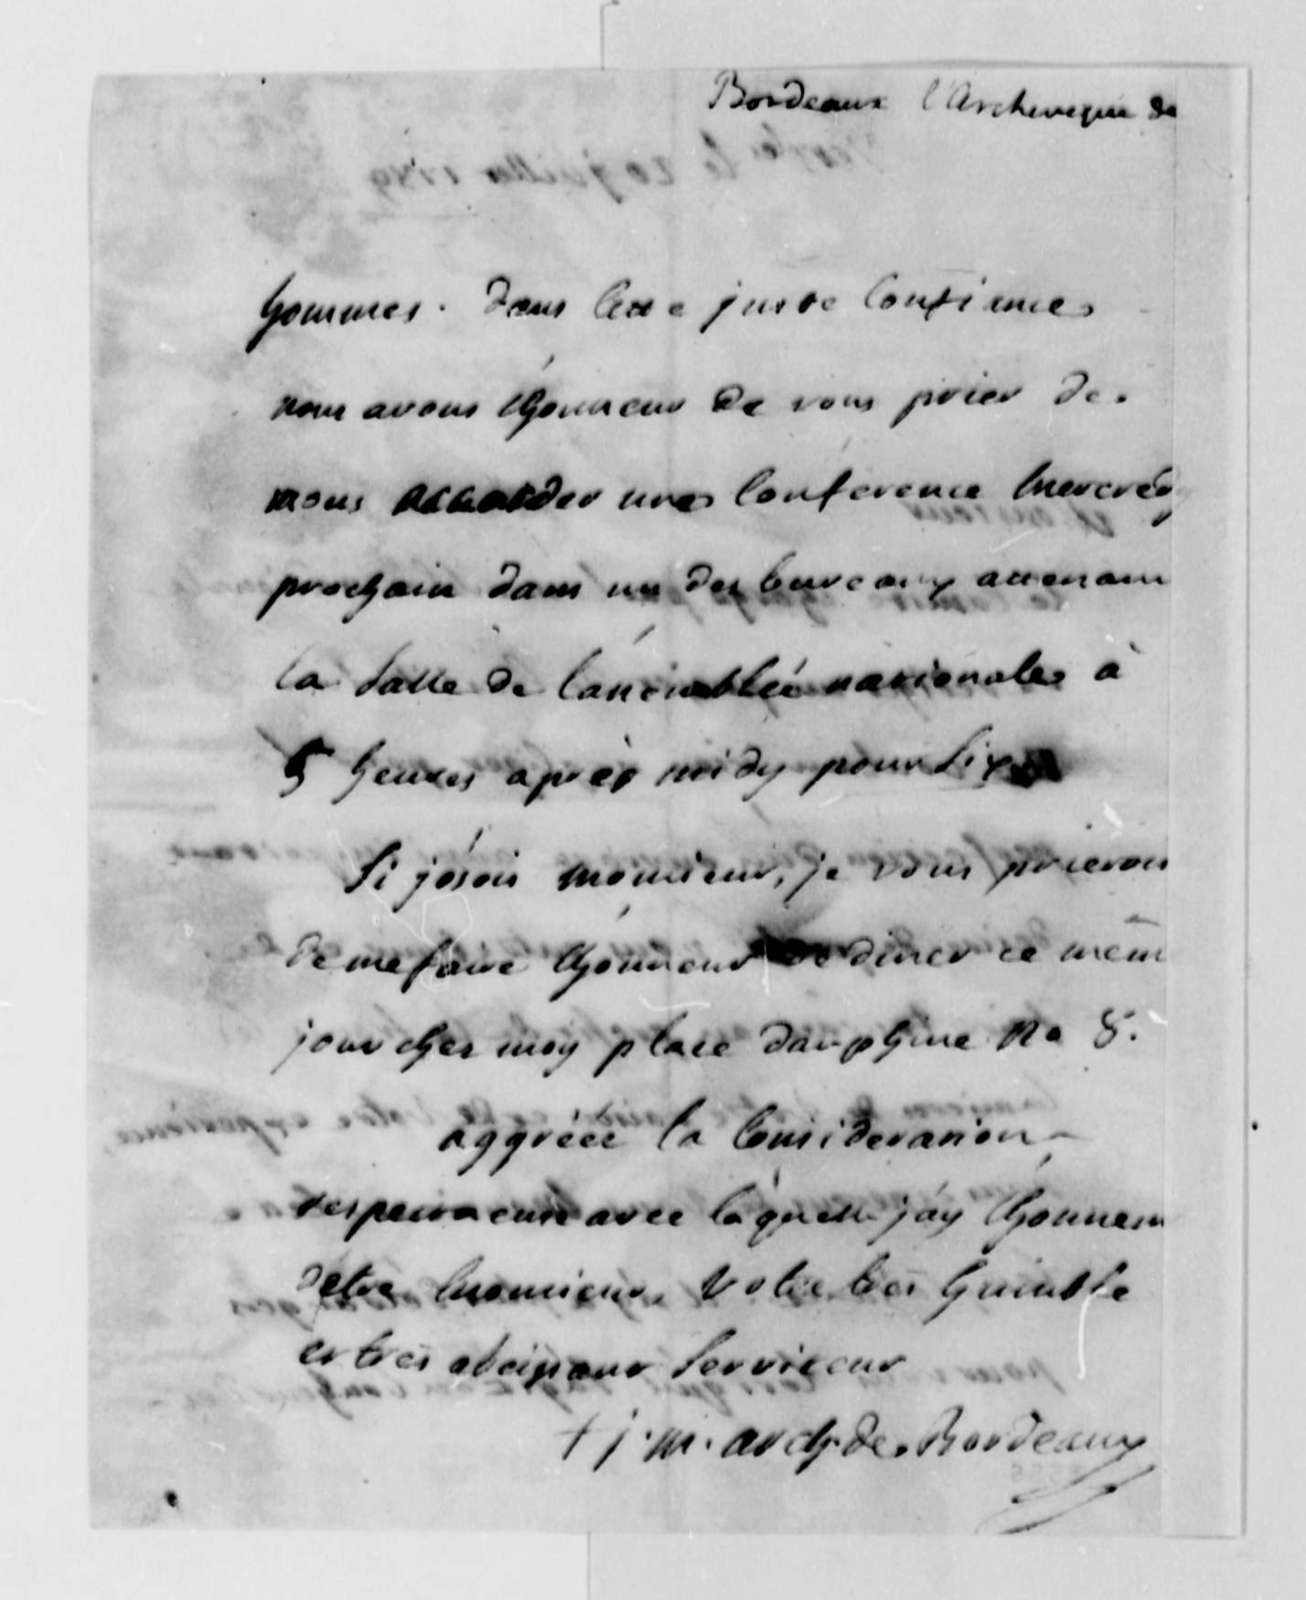 Archbishop Bordeaux to Thomas Jefferson, July 20, 1789, in French